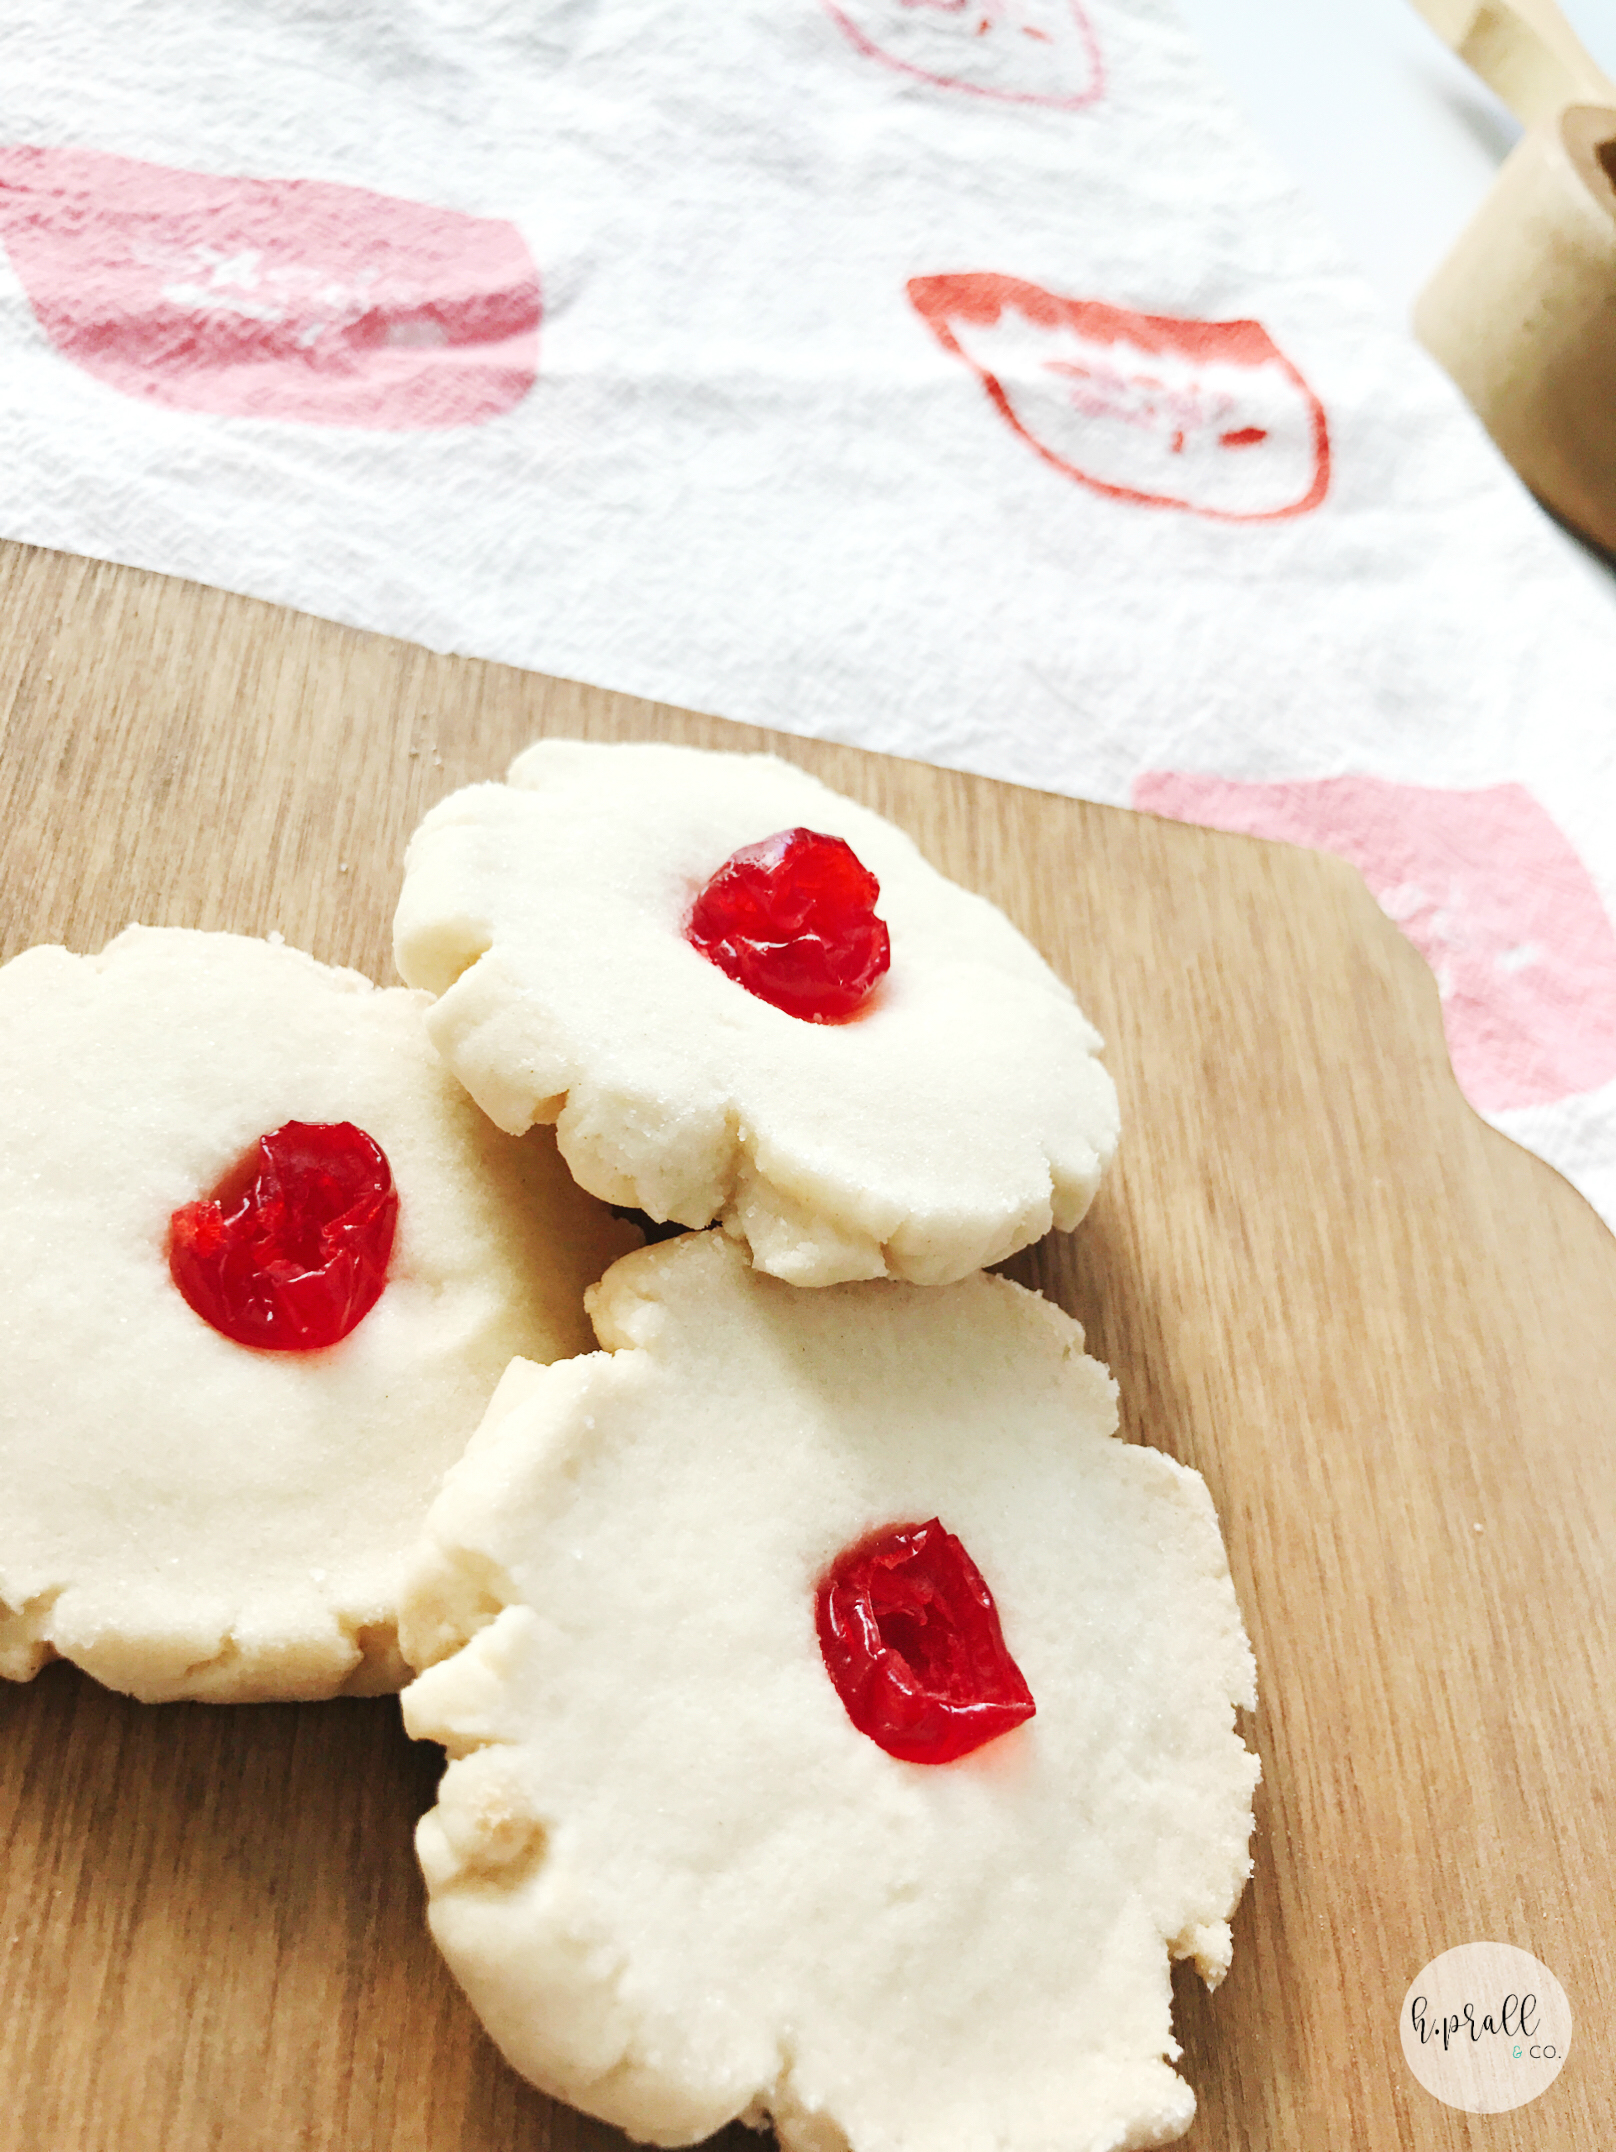 Holly Drop Cookies for Valentine's Day from H.Prall & Co.